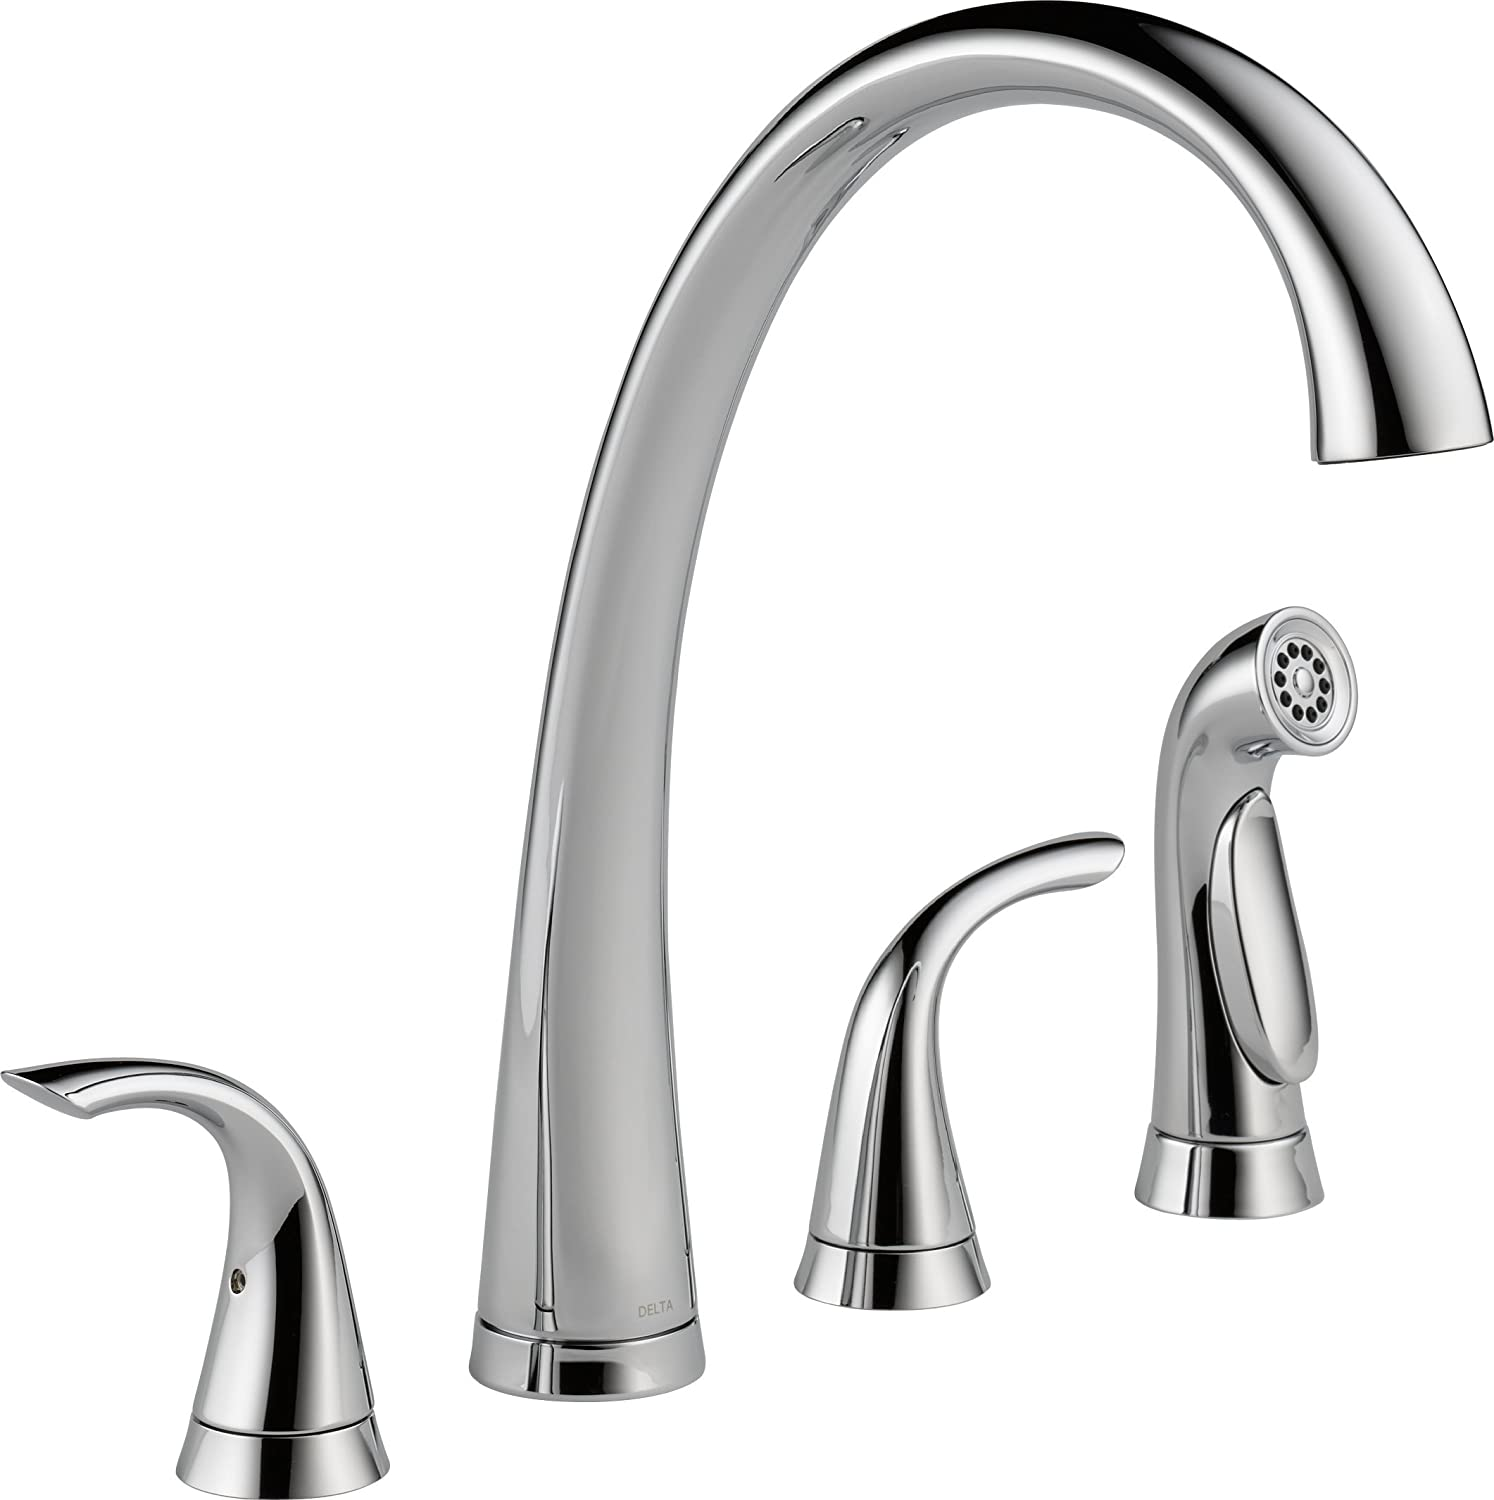 Delta Faucet 2480 DST Pillar Two Handle Widespread Kitchen Faucet With  Spray, Chrome   Touch On Kitchen Sink Faucets   Amazon.com